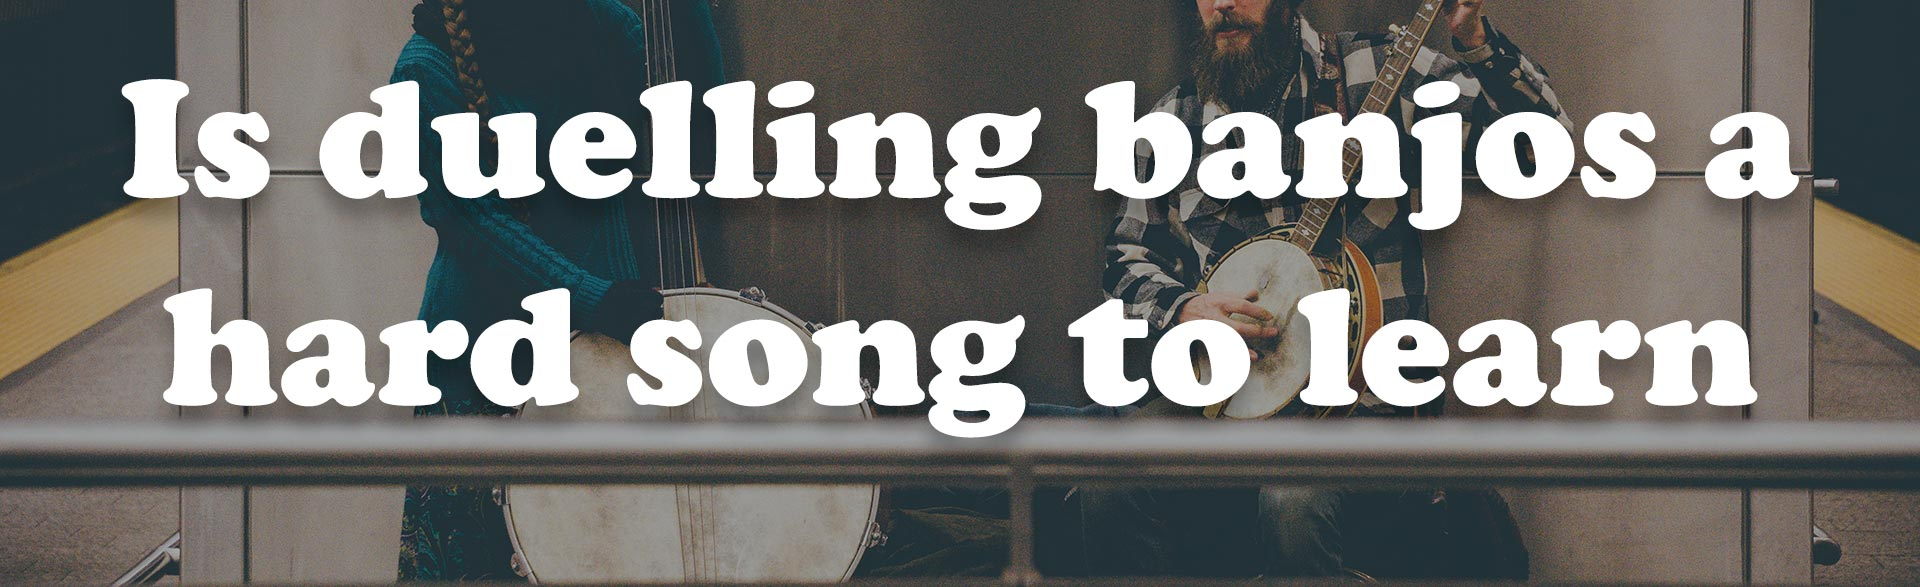 Is duelling banjos a hard song to learn